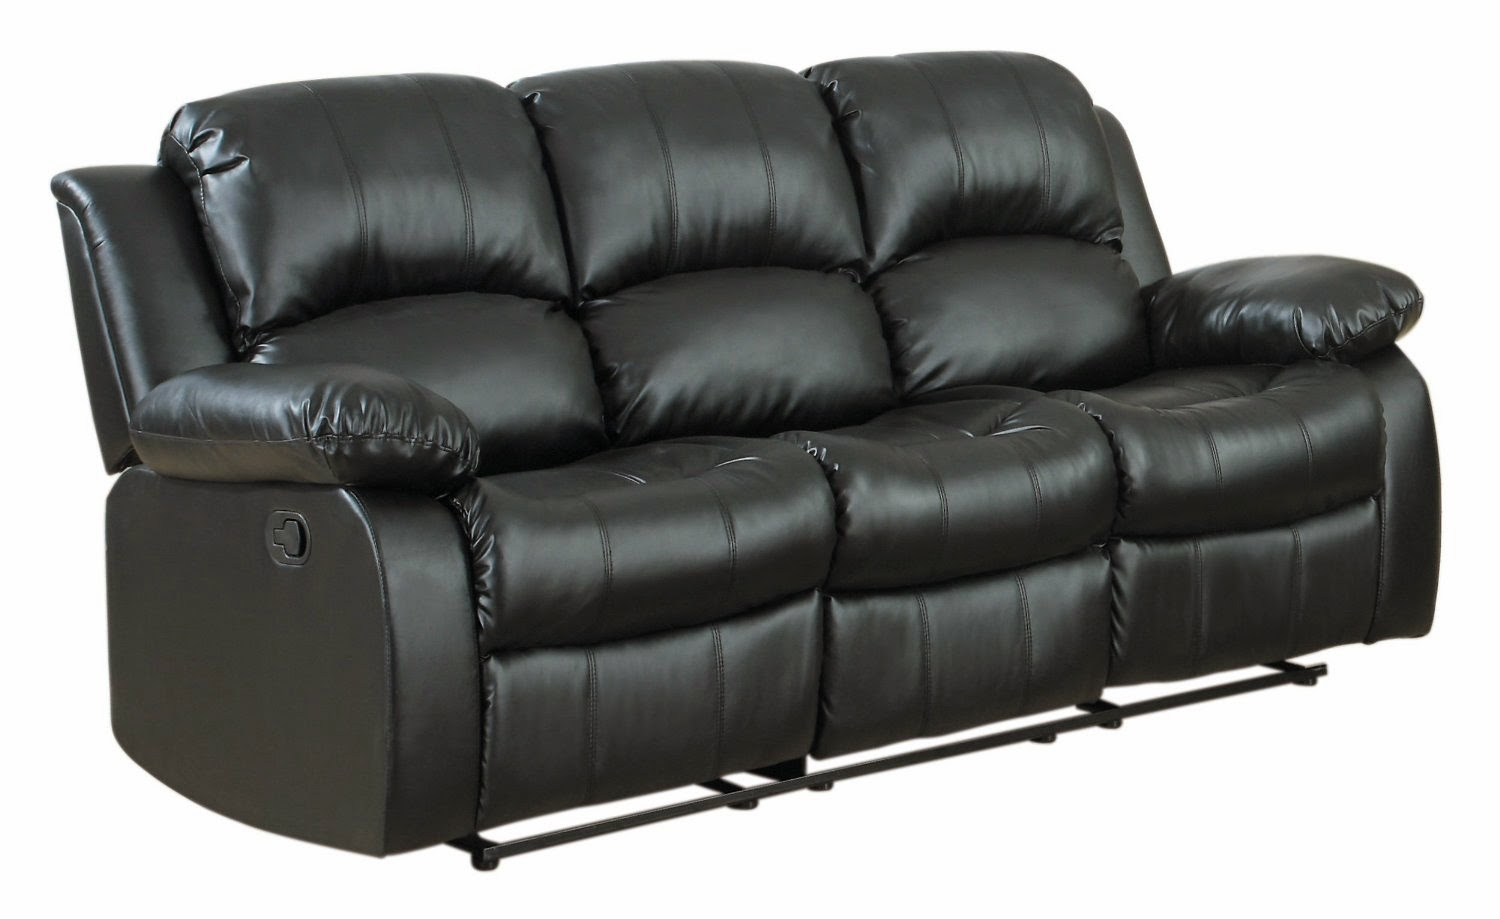 Cheap recliner sofas for sale black leather reclining sofa and loveseat Leather reclining loveseat